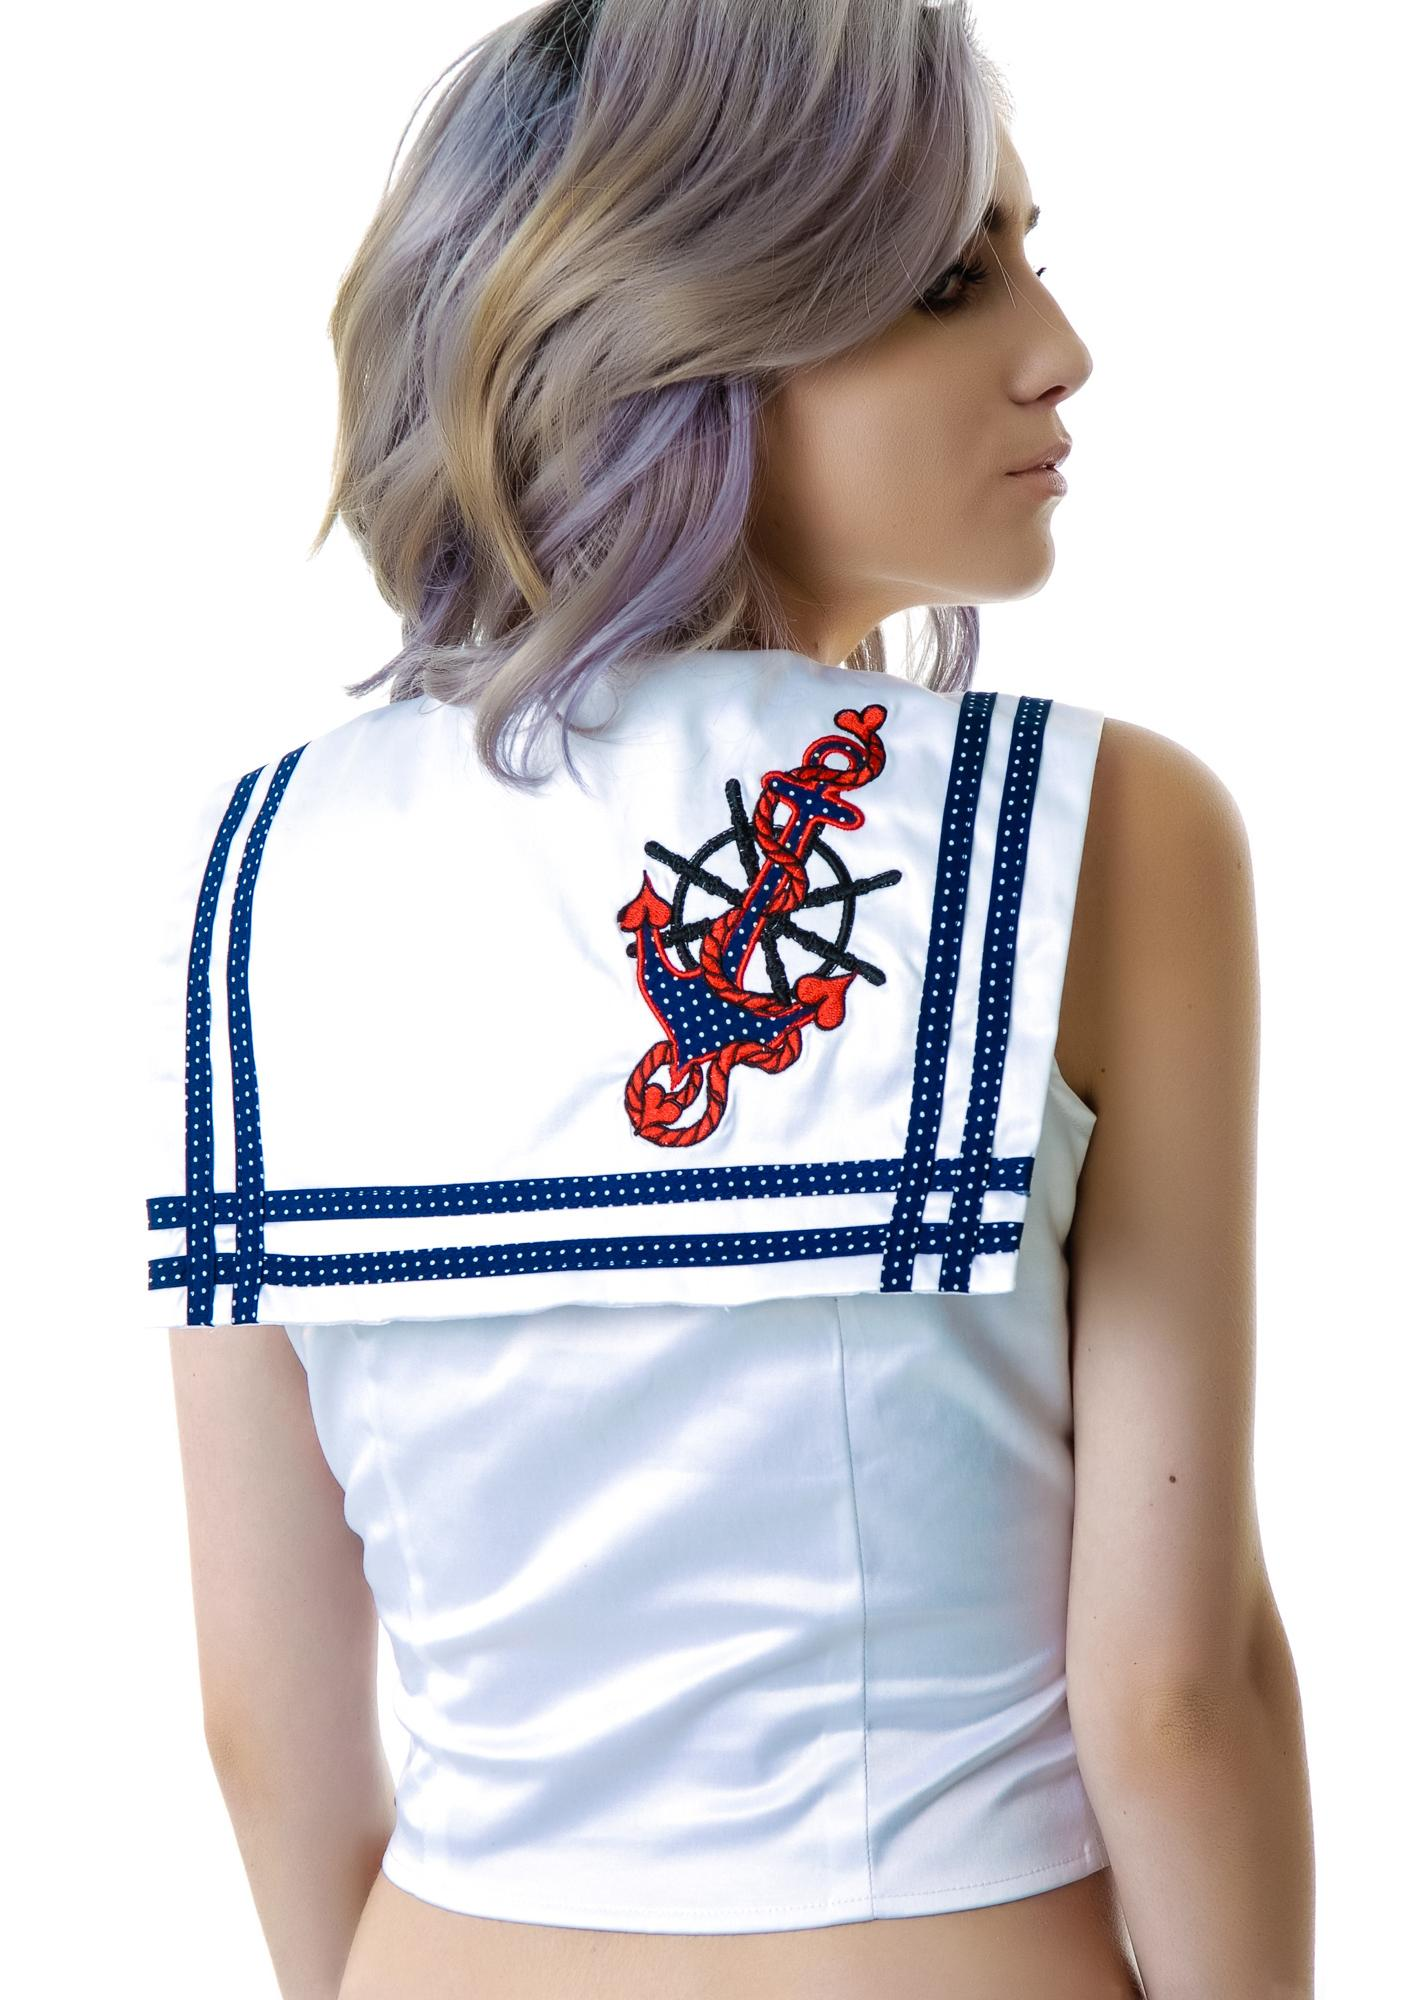 Anchors Away Baby Sleeveless Top